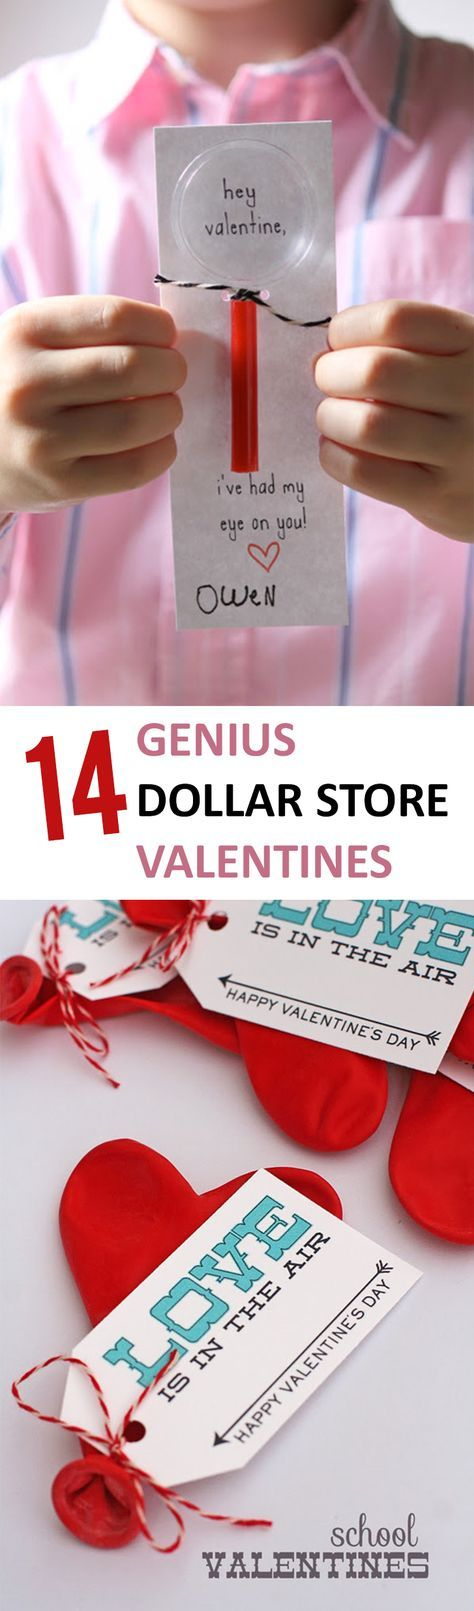 best 25 cheap valentines day ideas ideas on pinterest cheap valentine day date list